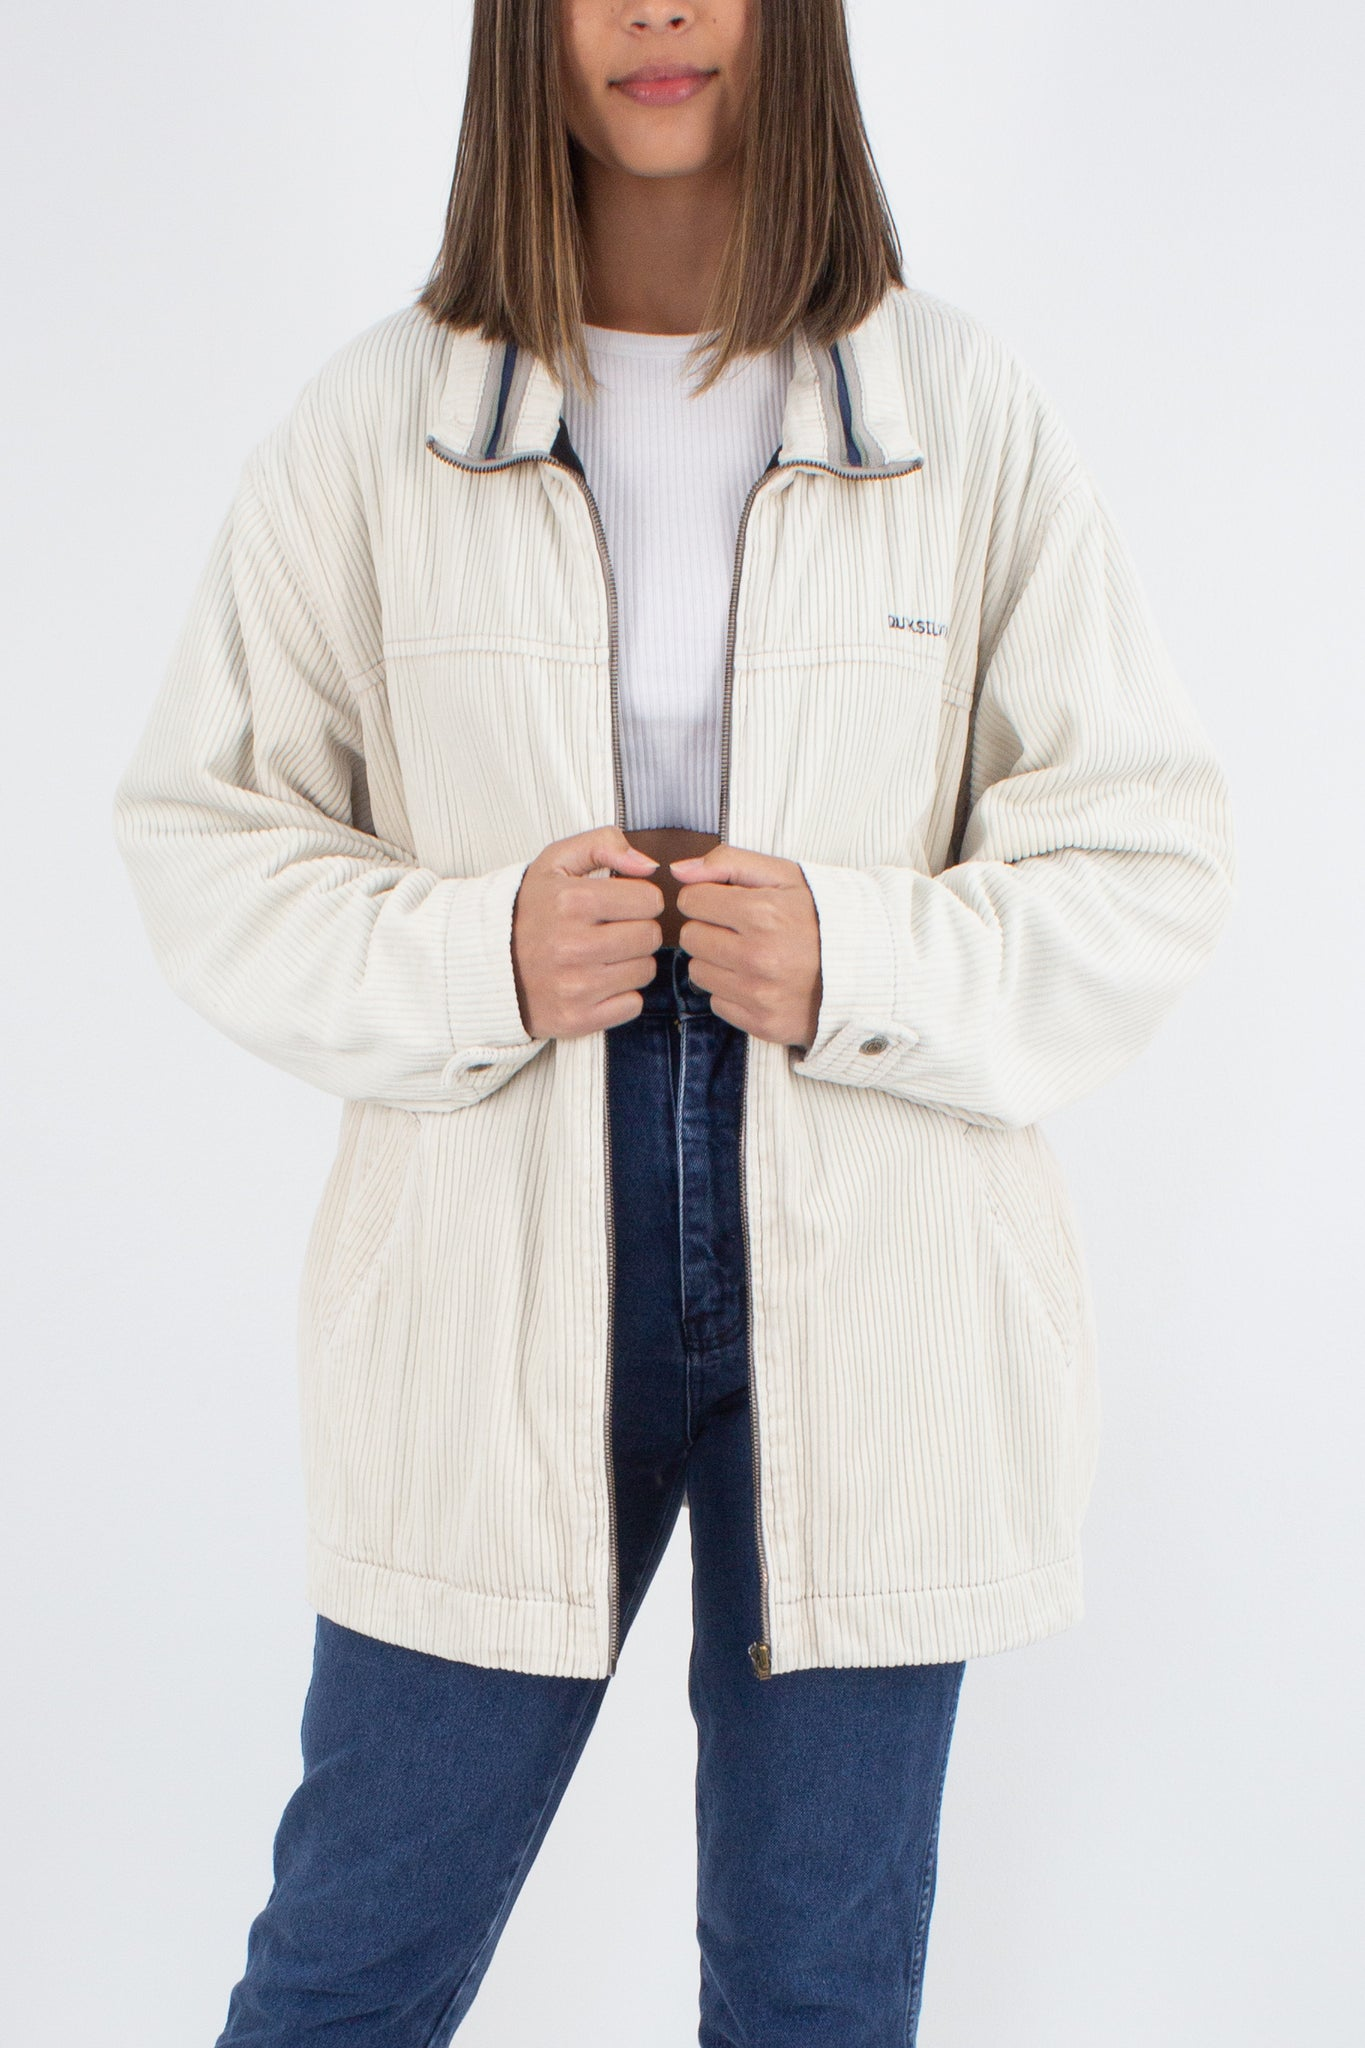 90s Quicksilver Cream Cord Zip Up Jacket - Unisex - Free Size